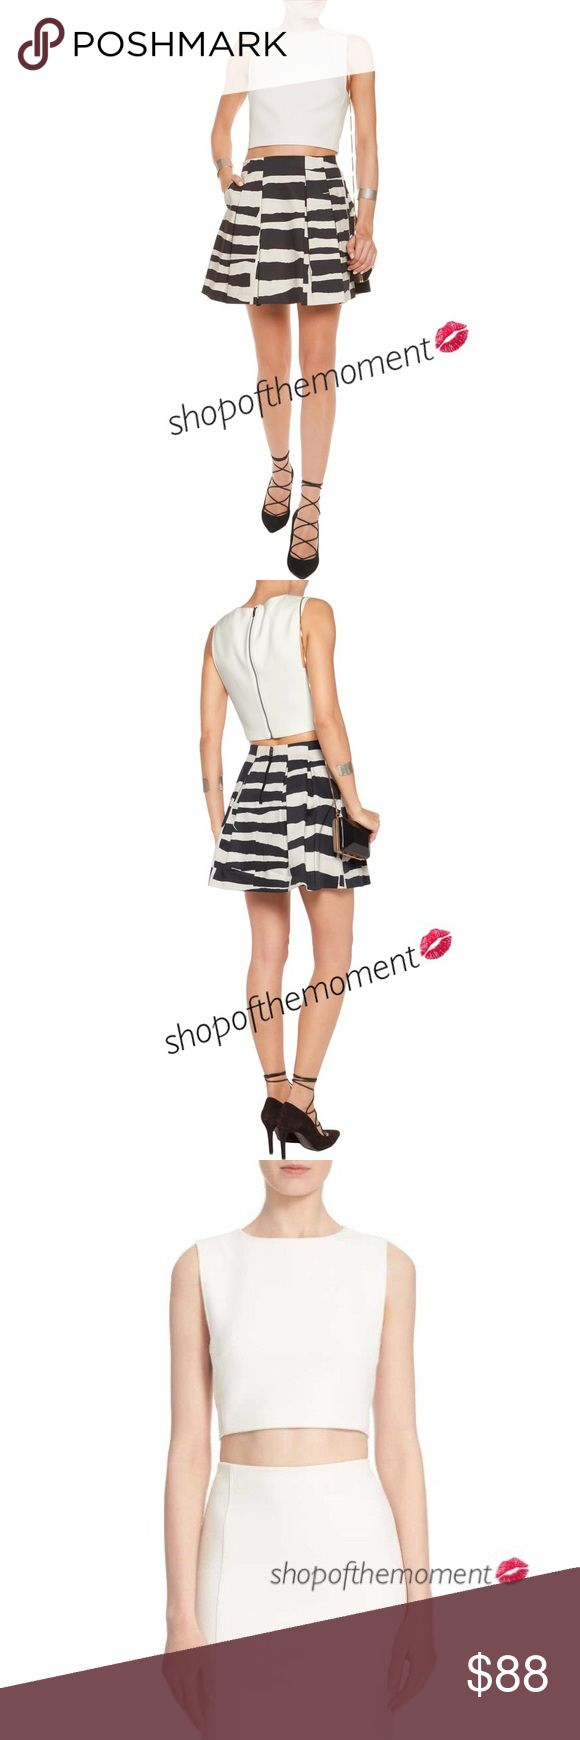 """⛱🆕 Alice + Olivia ❉ Tailored Crop Top ❉ Off White Alice + Olivia  Tailored Crop Top  in Off White Brand New with Tags in Manufacturer's Packaging  ⛱⛱⛱⛱⛱⛱⛱⛱⛱⛱⛱⛱  A tailored sleeveless cropped top features sleek angular armholes and an exposed metallic back zip for a crisp, modern look that will see you through the sunny months. Lined.   Approximate Measurements: Length: 18"""" from shoulder  Fabrication: 64% polyester/32% viscose/4% elastane Dry clean recommended   ⛱⛱⛱⛱⛱⛱⛱⛱⛱⛱⛱⛱  ✗ Drama ✗…"""